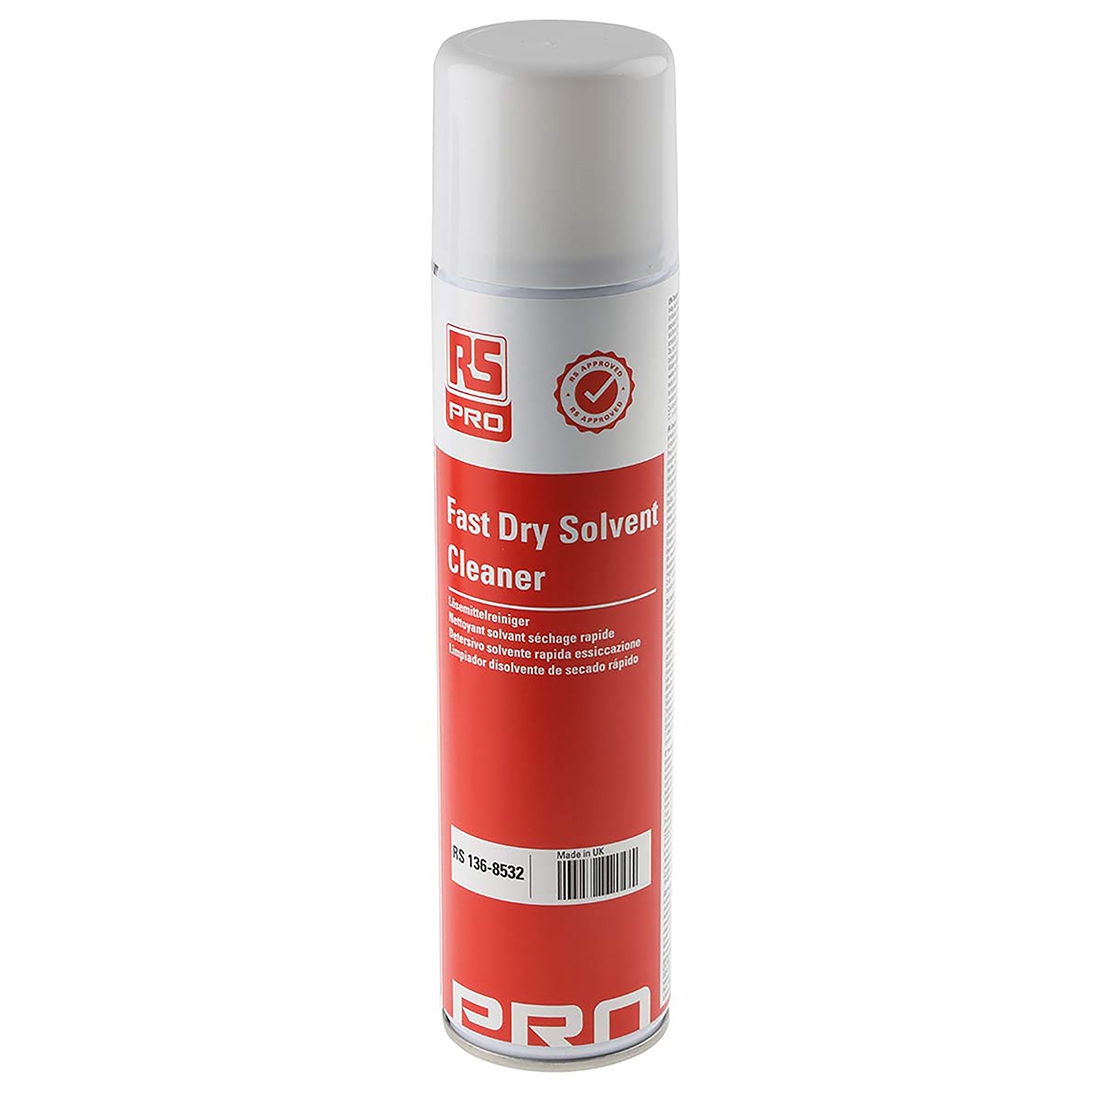 RS PRO 400 ml Aerosol Precision Cleaner for PCBs